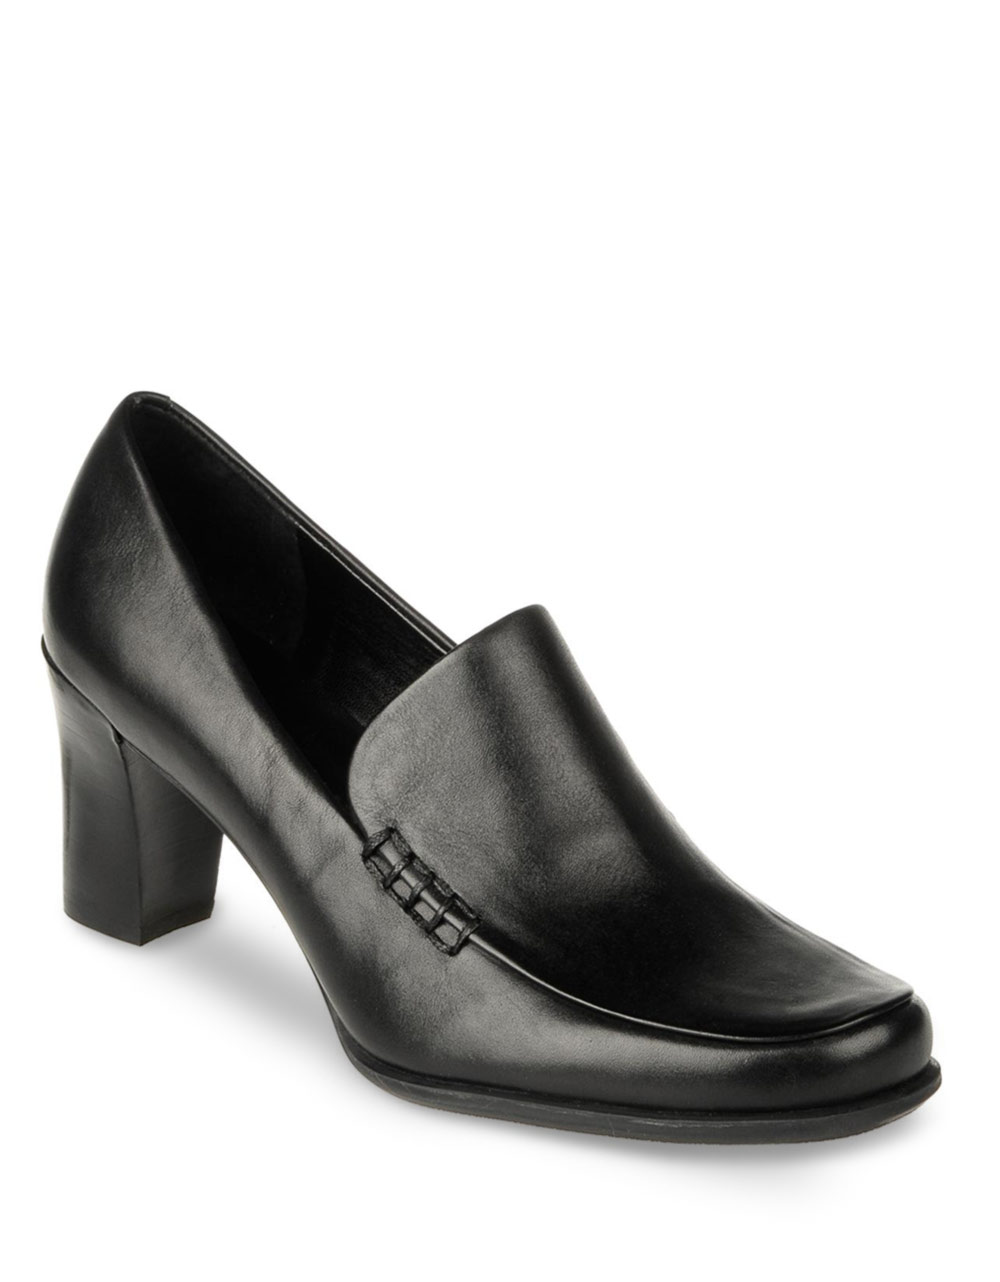 You can find high heel, Women high heel loafers for women free shipping, high heel loafers for women and view 6 high heel loafers for women reviews to help you choose. Shop By Country designer blue black high heels Canada.